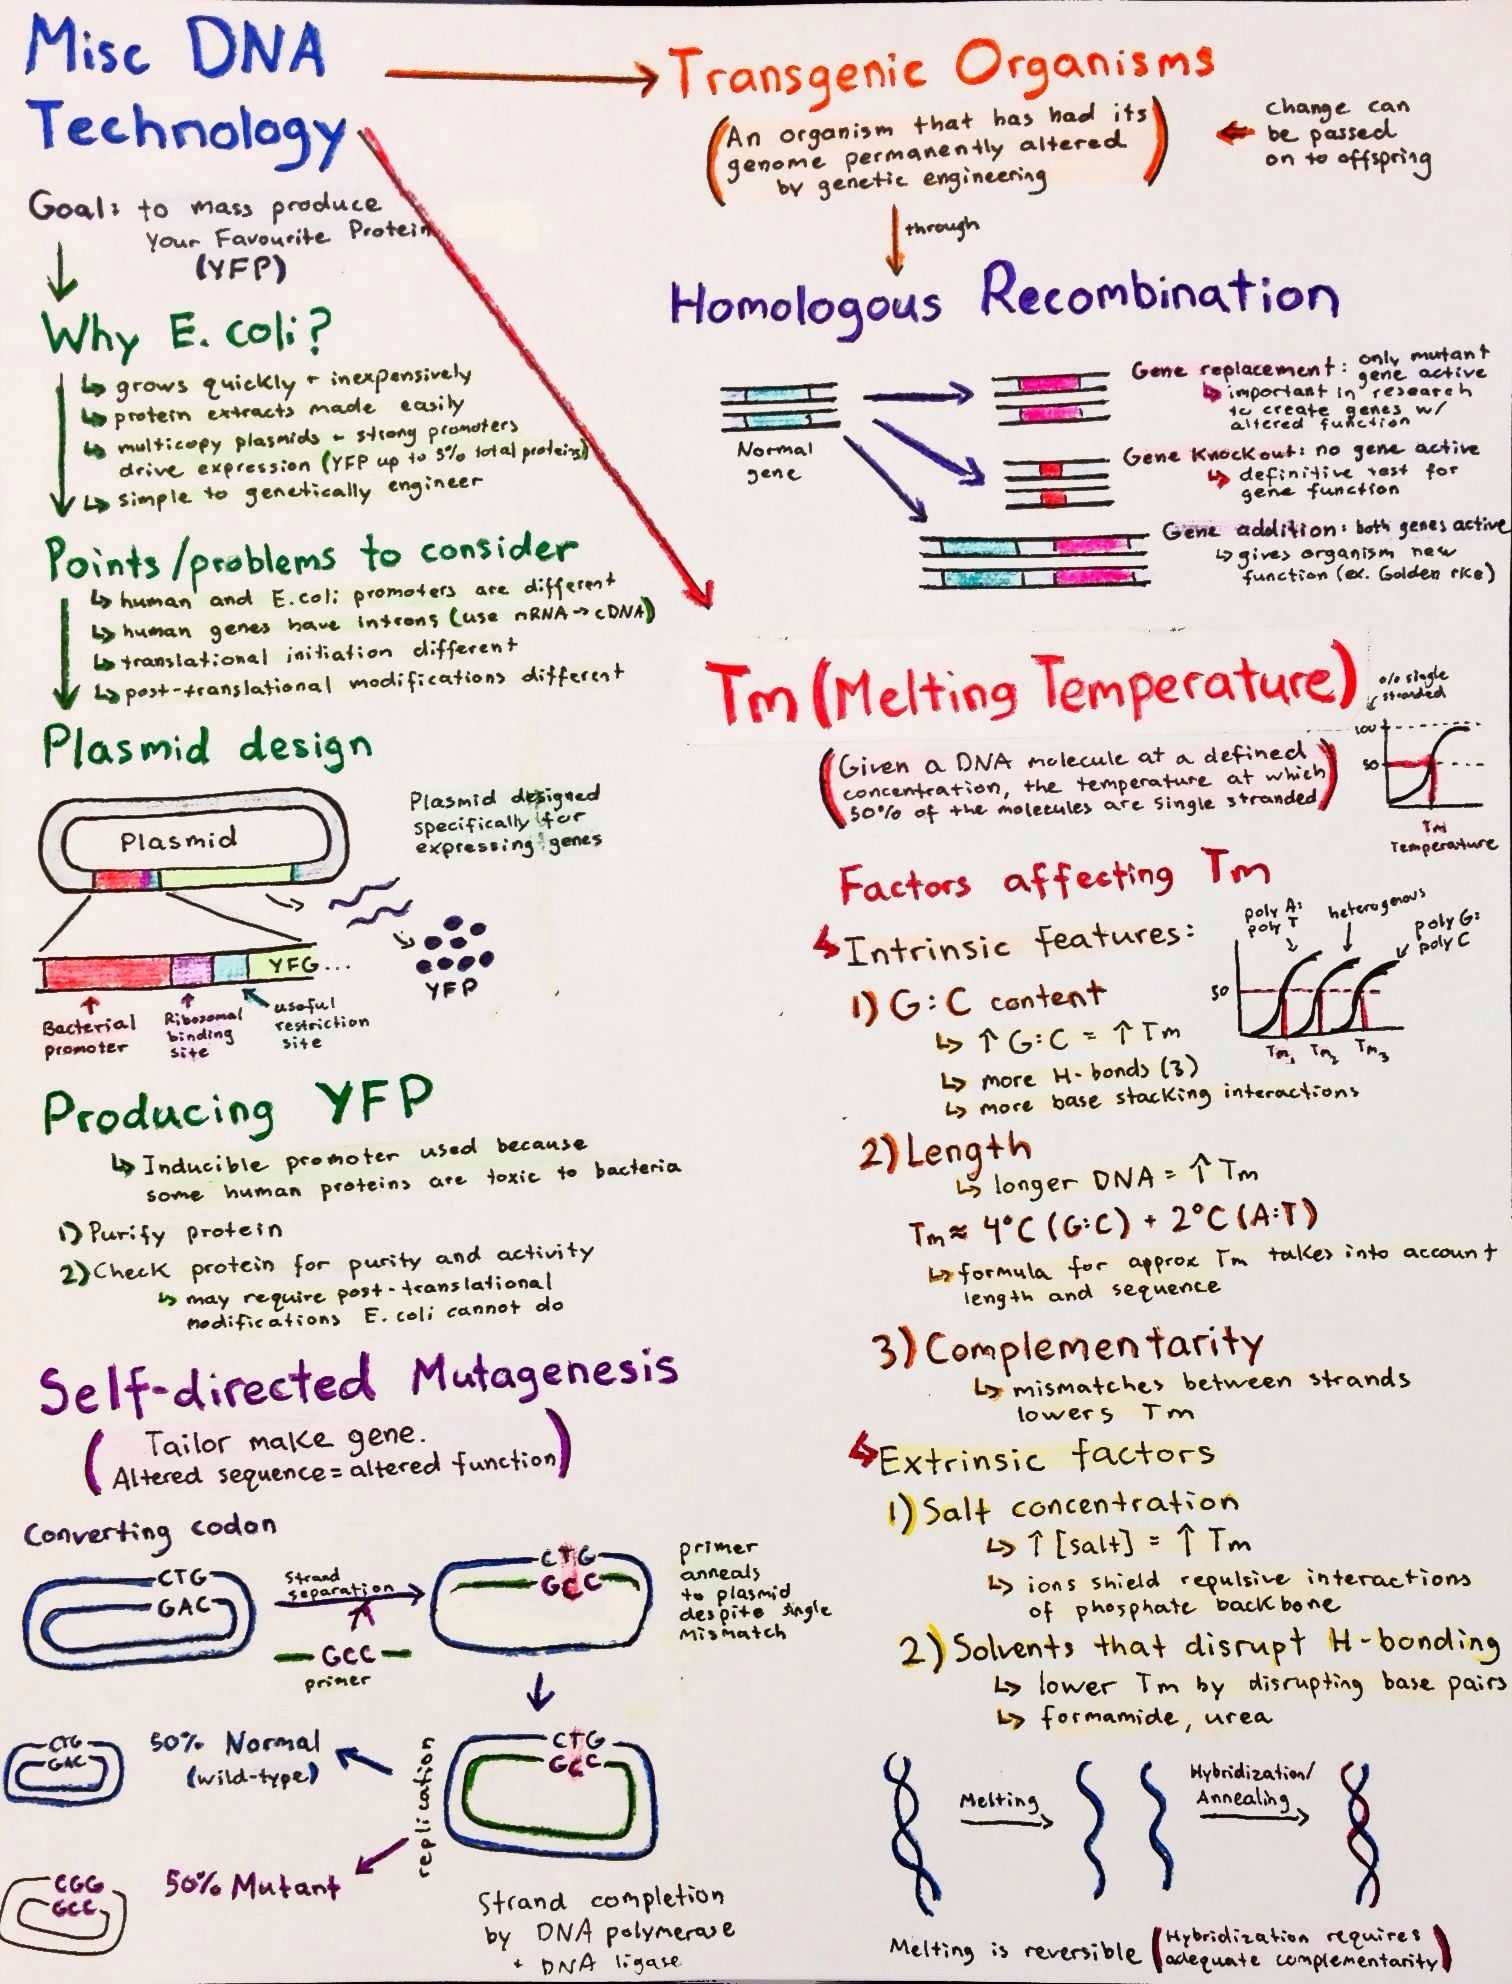 Dna Molecule and Replication Worksheet Answers with Introductory Biochemistry Flowcharts